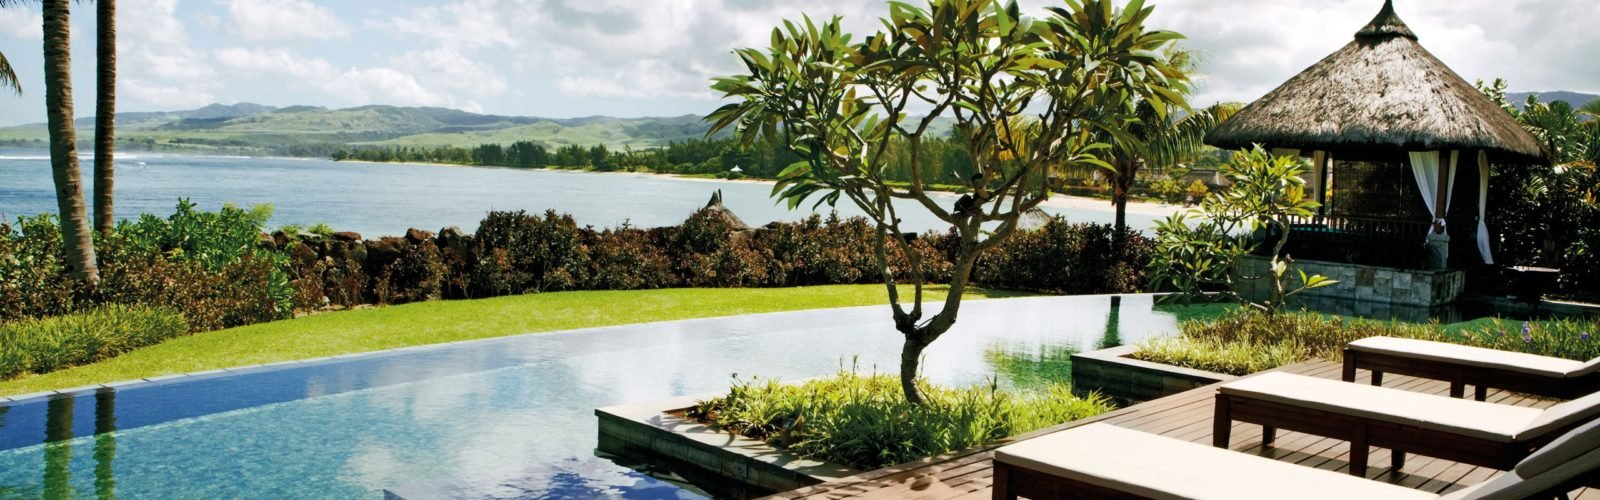 Presidential Villa pool and terrace, Shanti Maurice, Mauritius, Africa